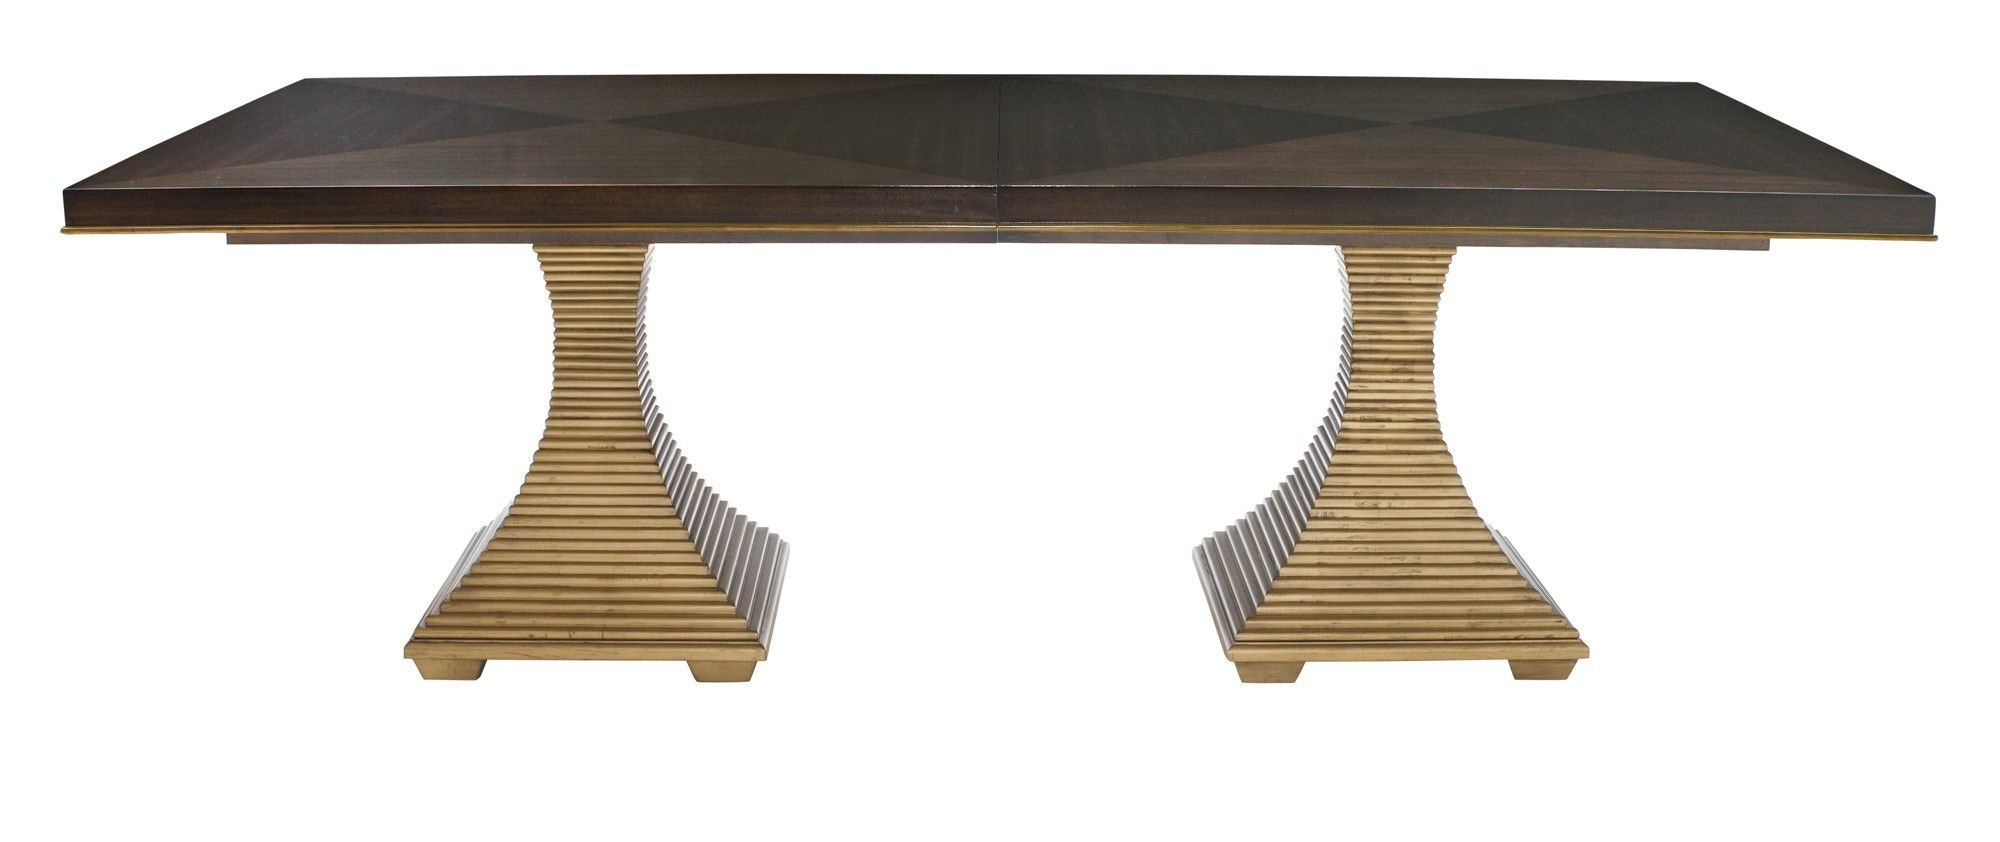 Jet Set Double Pedestal Dining Table KT:28647